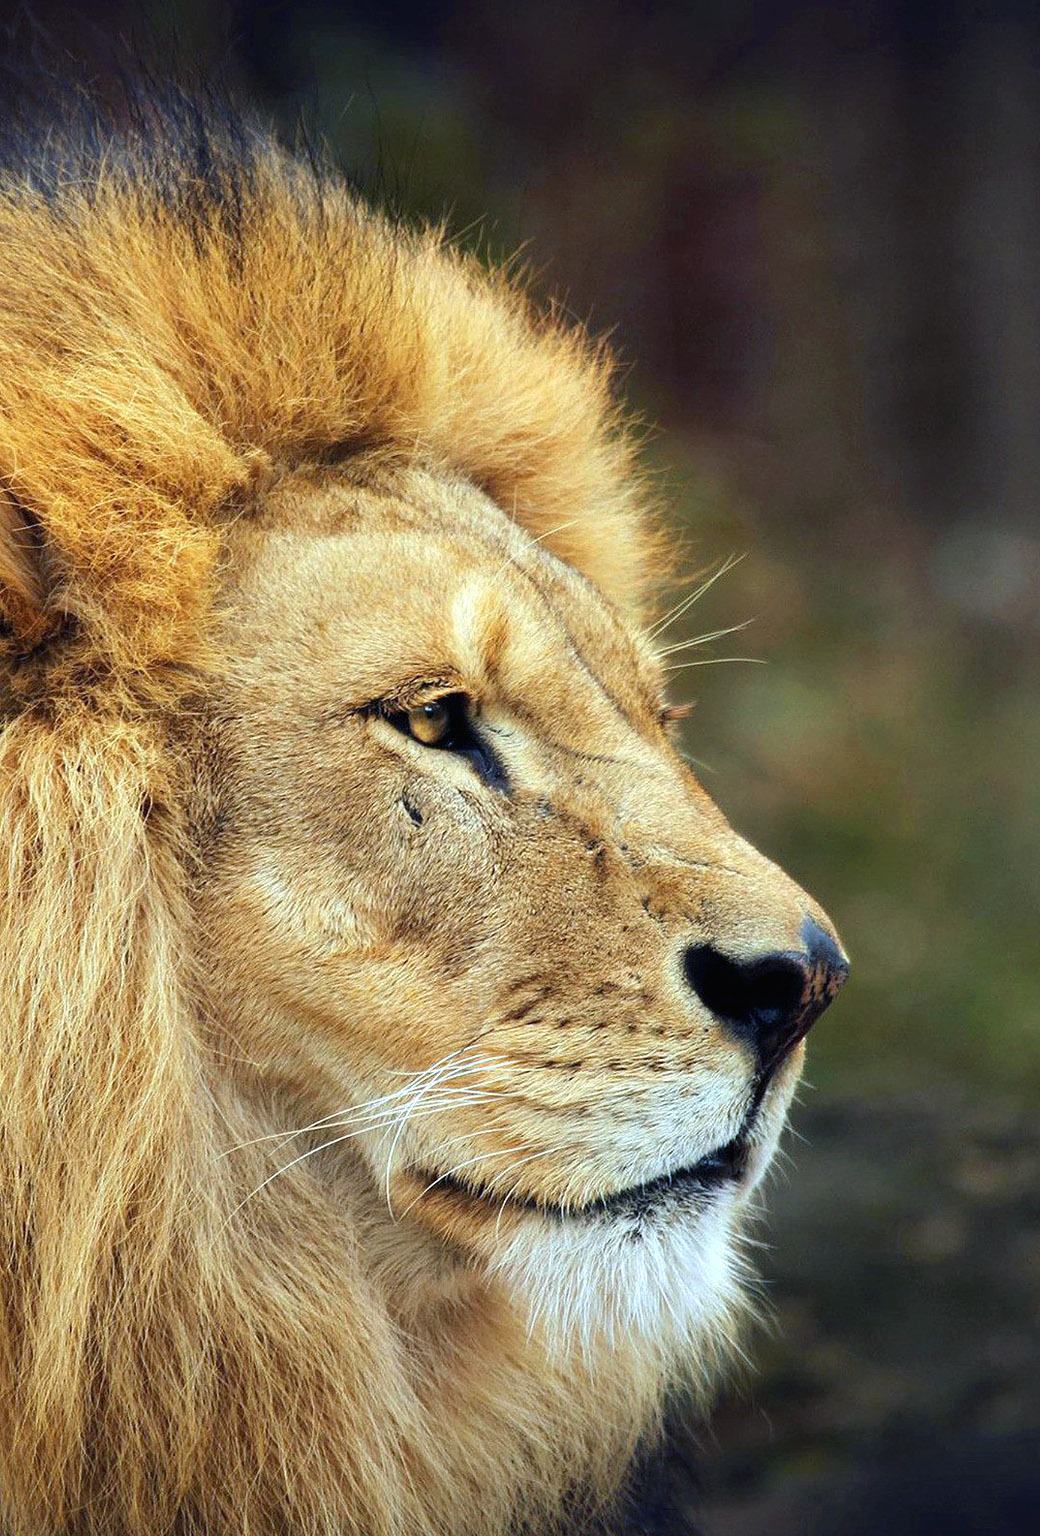 Lion wallpapers for iPhone and iPad 1040x1536